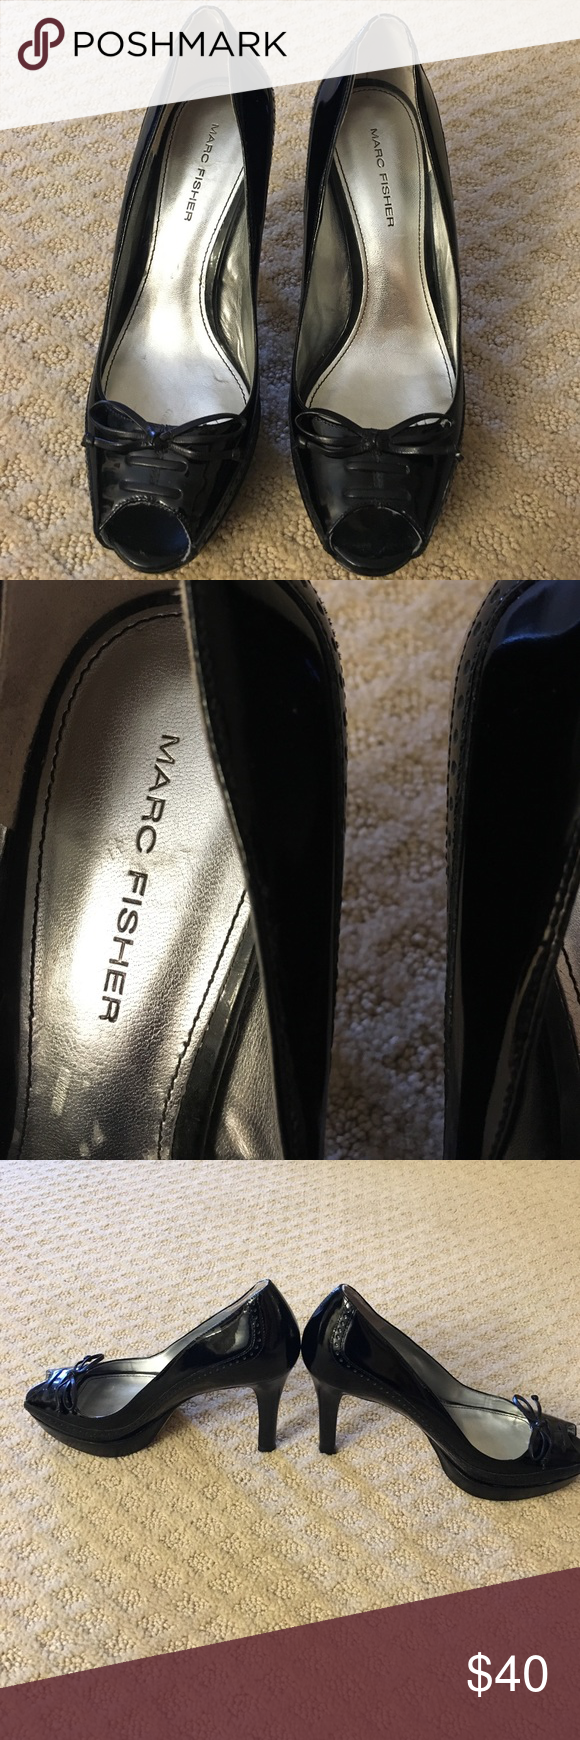 ON SALE!!!Marc Fisher Patent Leather Peeptoe Shoes Excellent condition Patent Leather Shoes Marc Fisher Shoes Heels